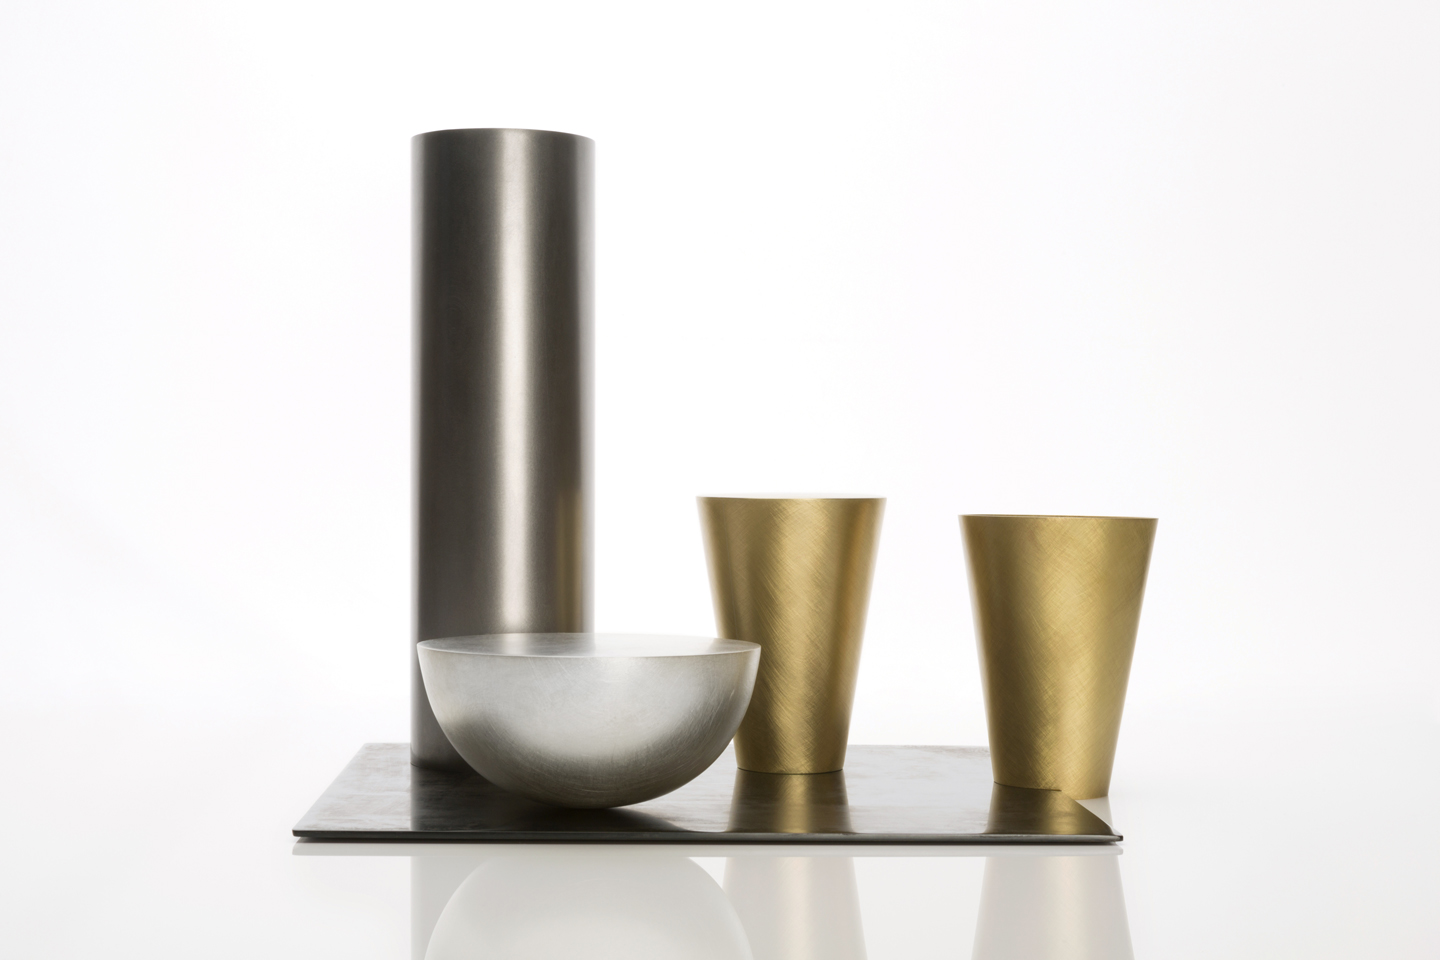 Juliette_Bigley_Bowl_with_Vessels_Mixed_Metals_2018_8.jpg